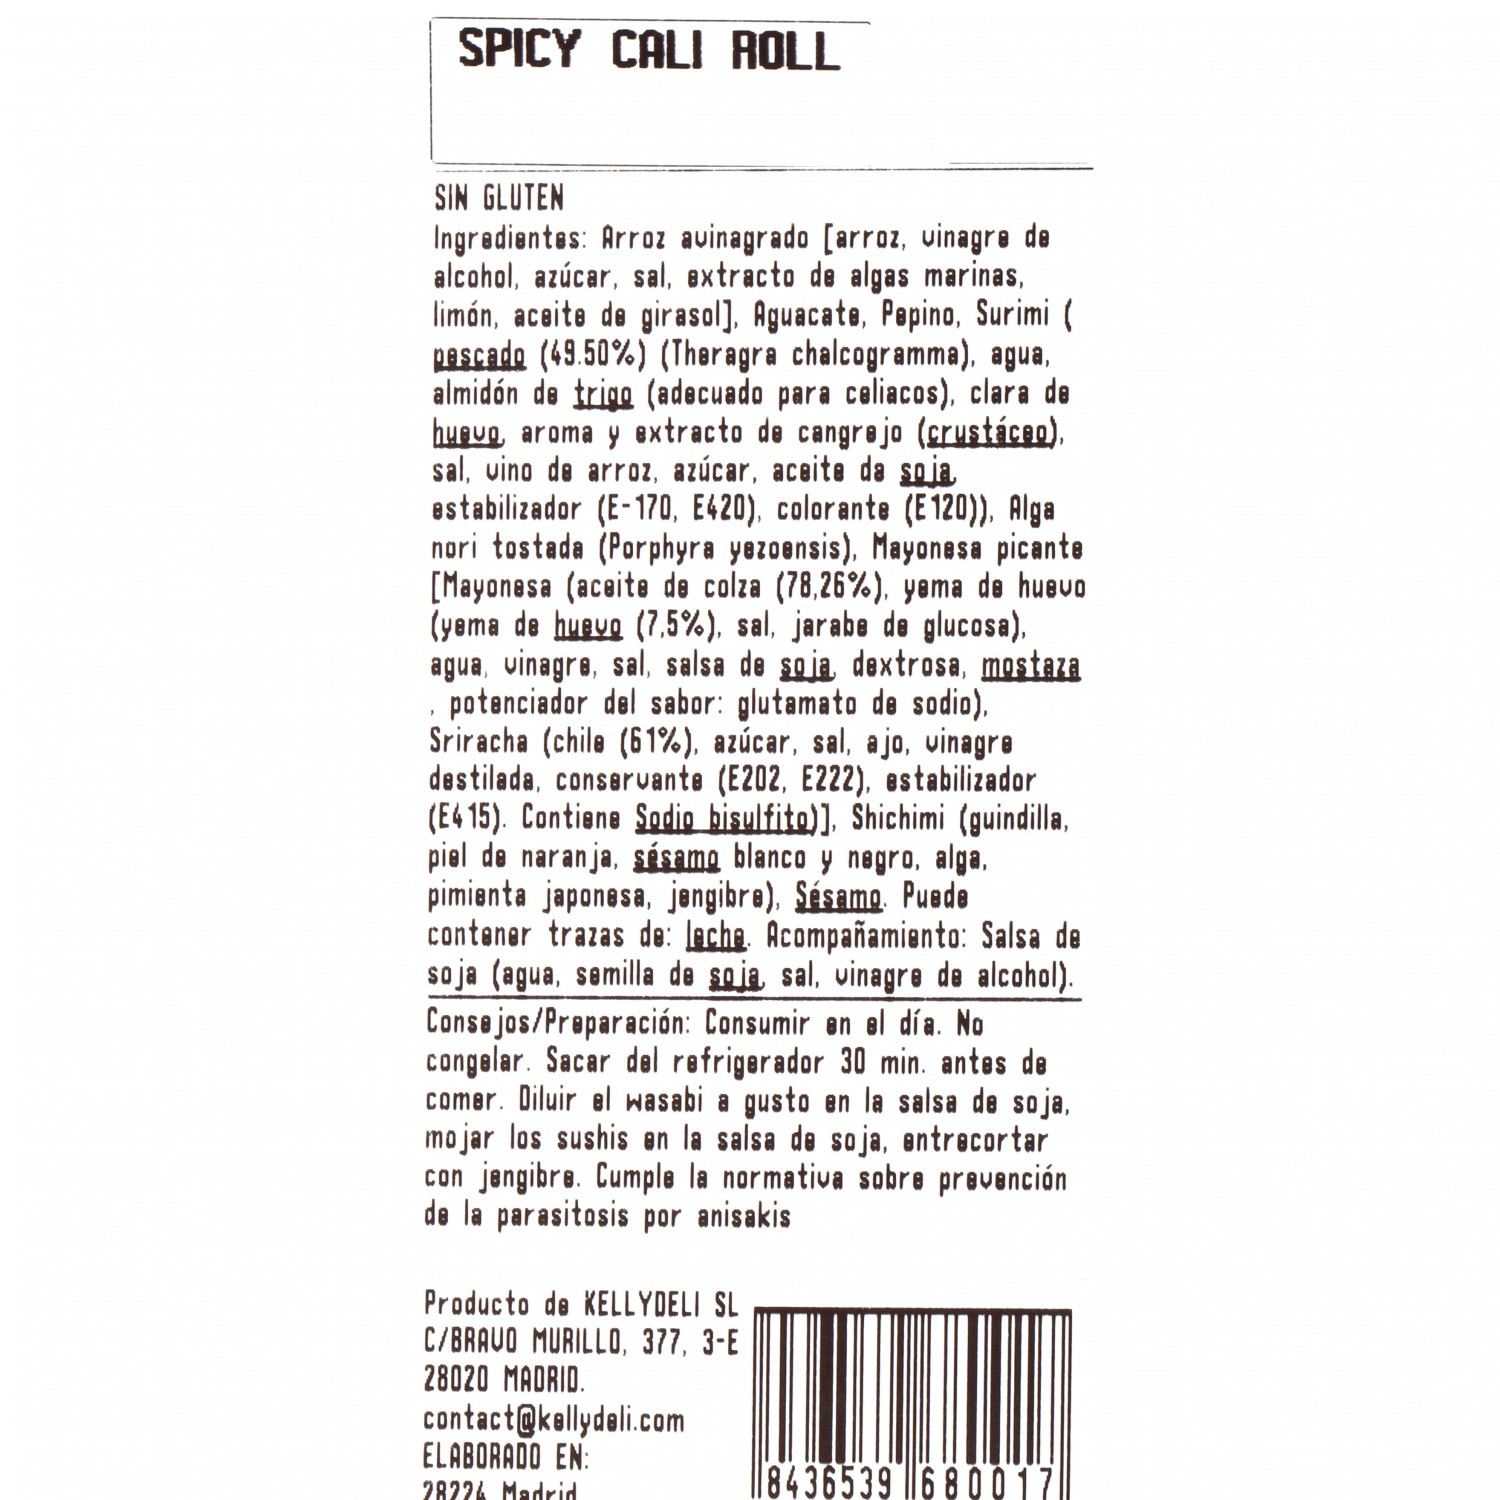 Spicy cali roll - 3